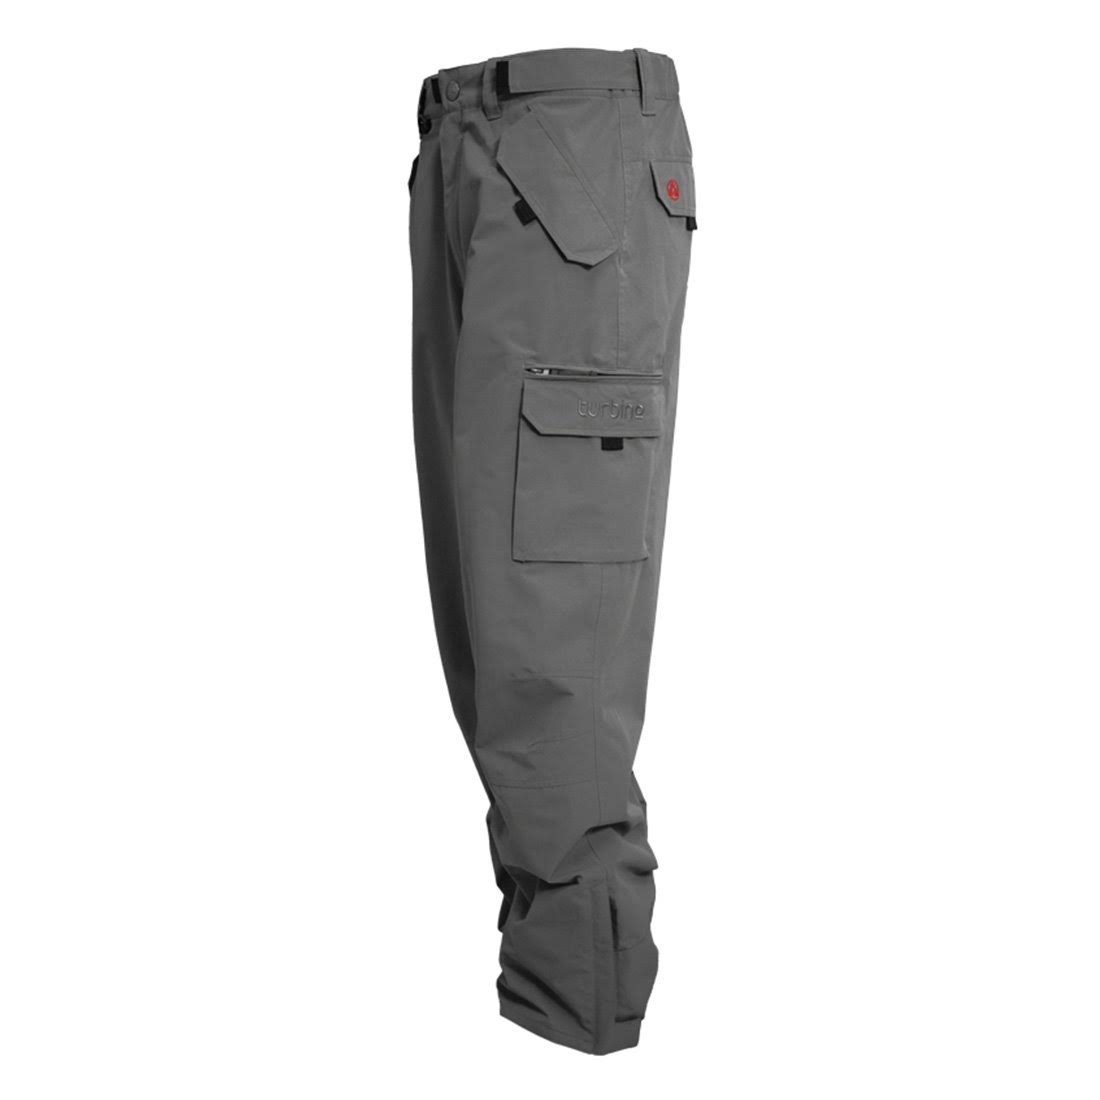 Turbine FDGB Mens Snowboard Pants L